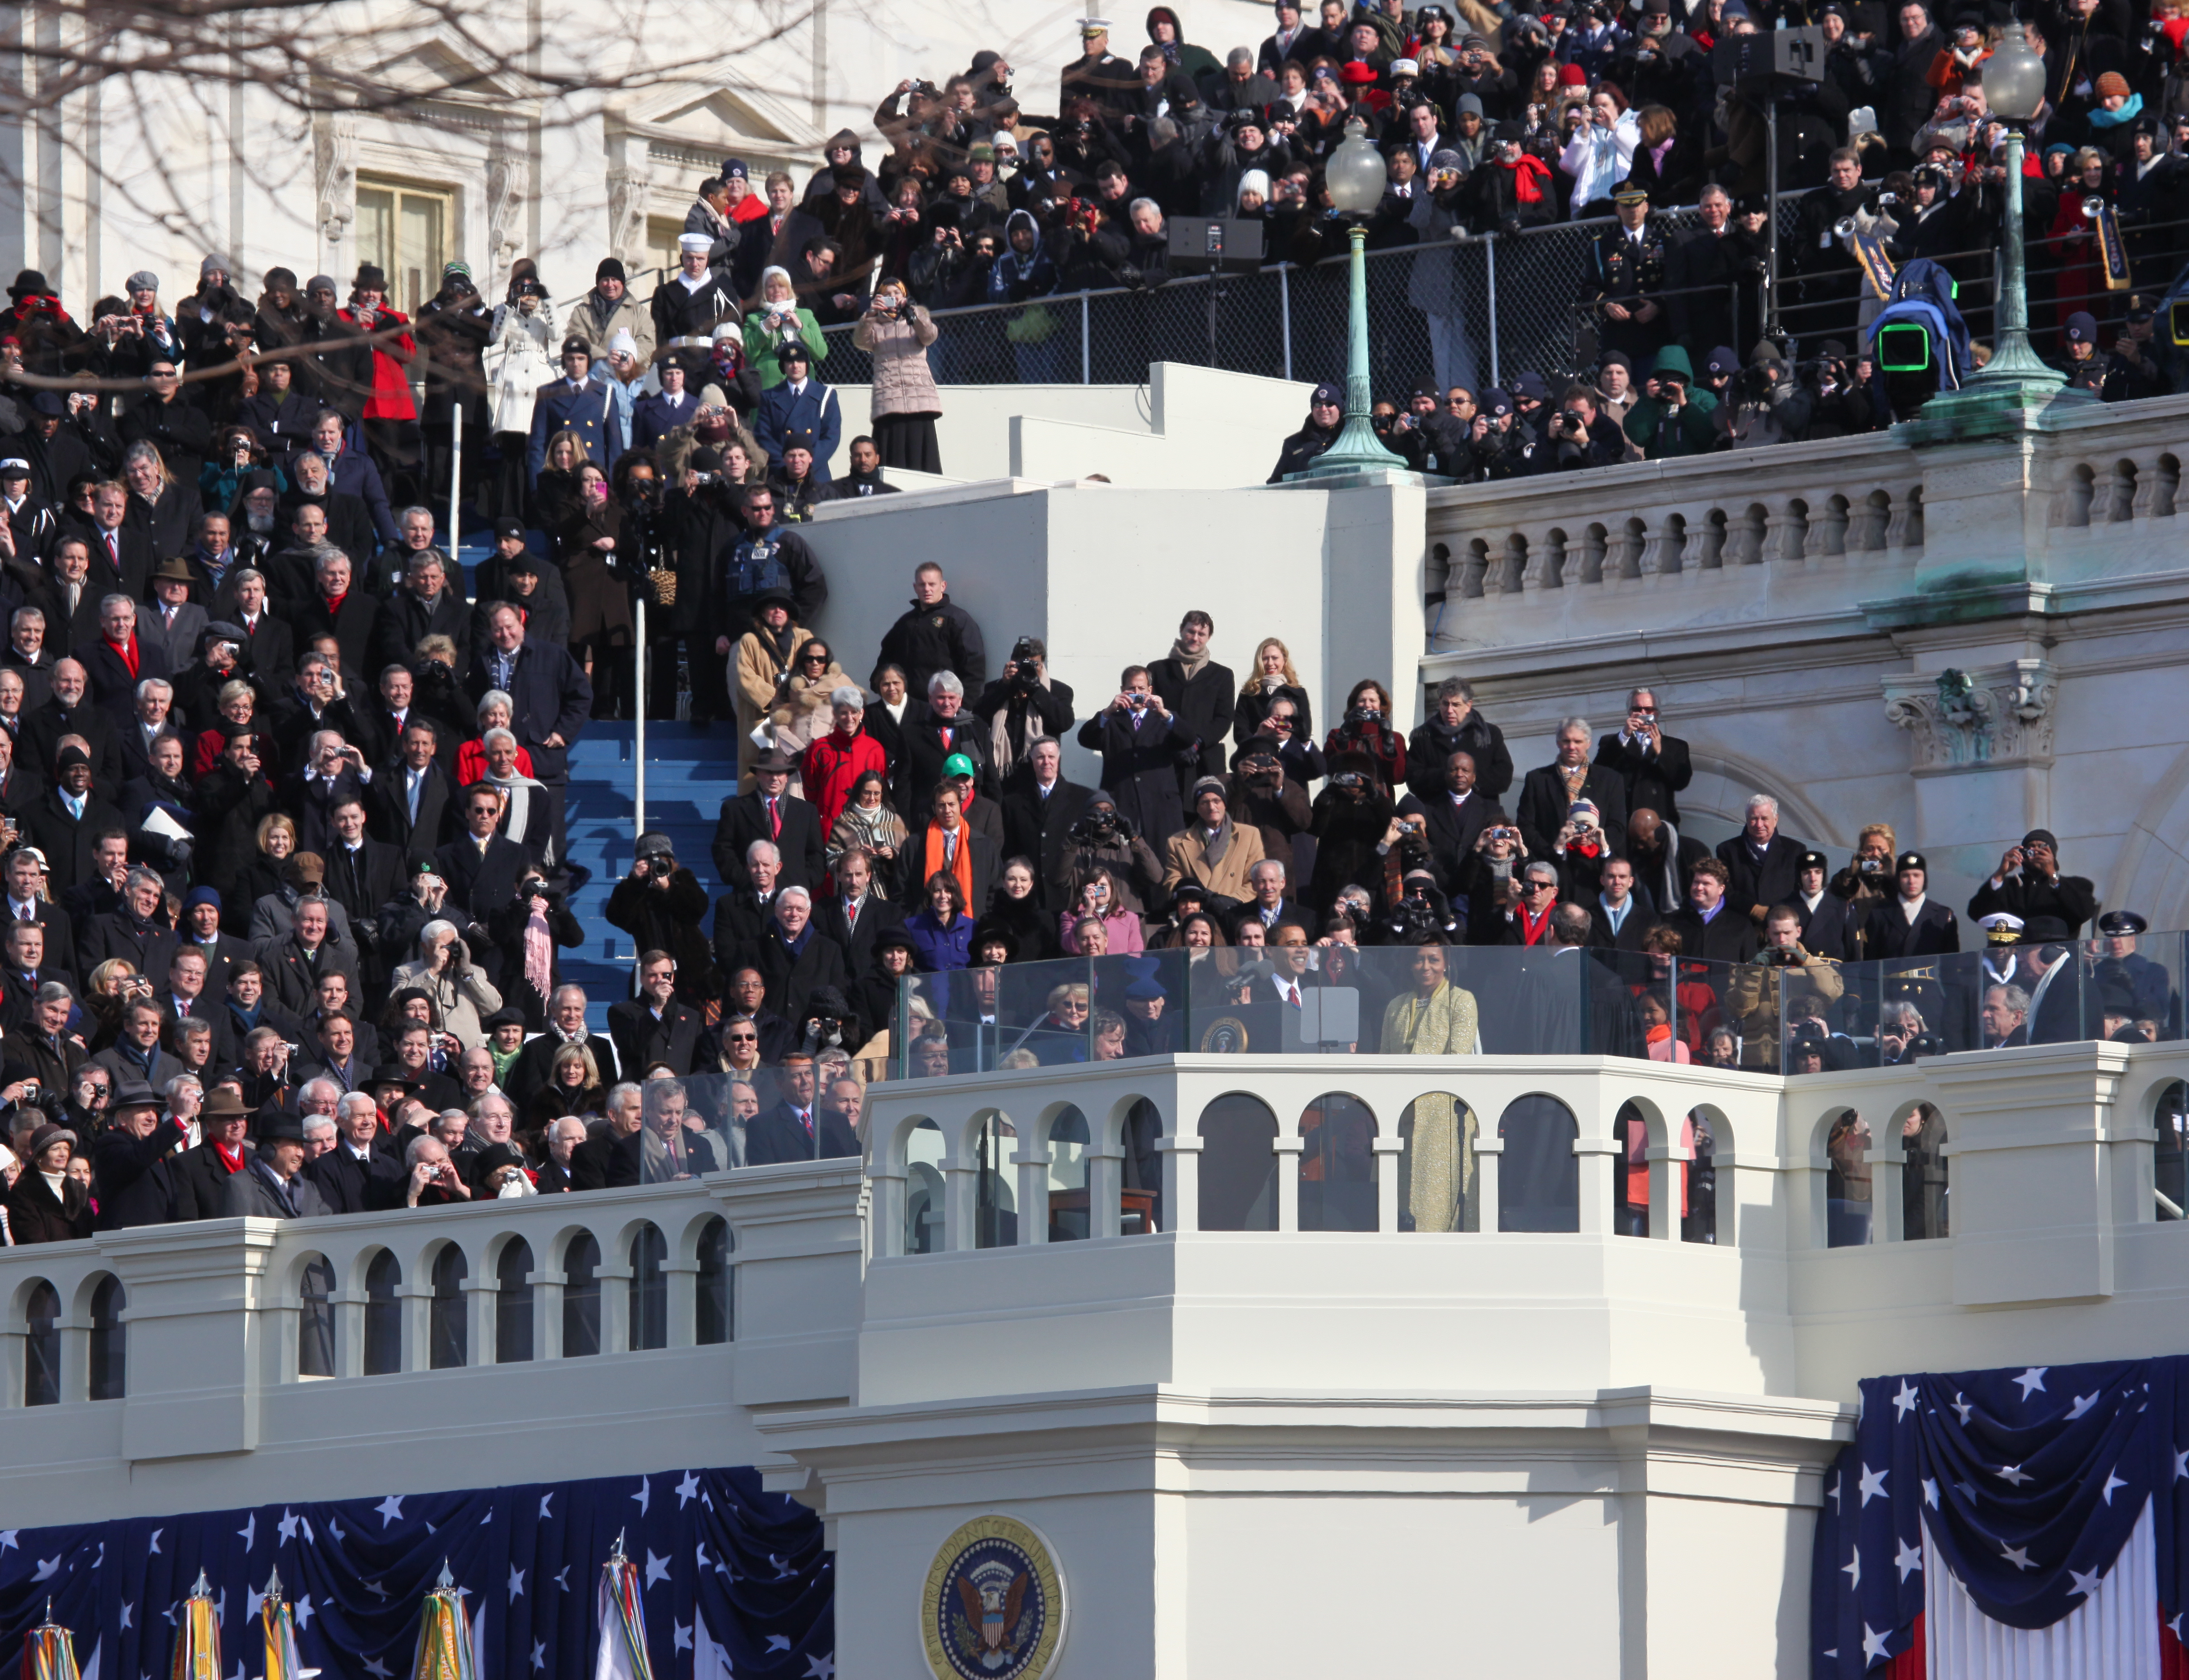 https://i1.wp.com/upload.wikimedia.org/wikipedia/commons/d/d6/Barack_Obama_Inauguration.jpg